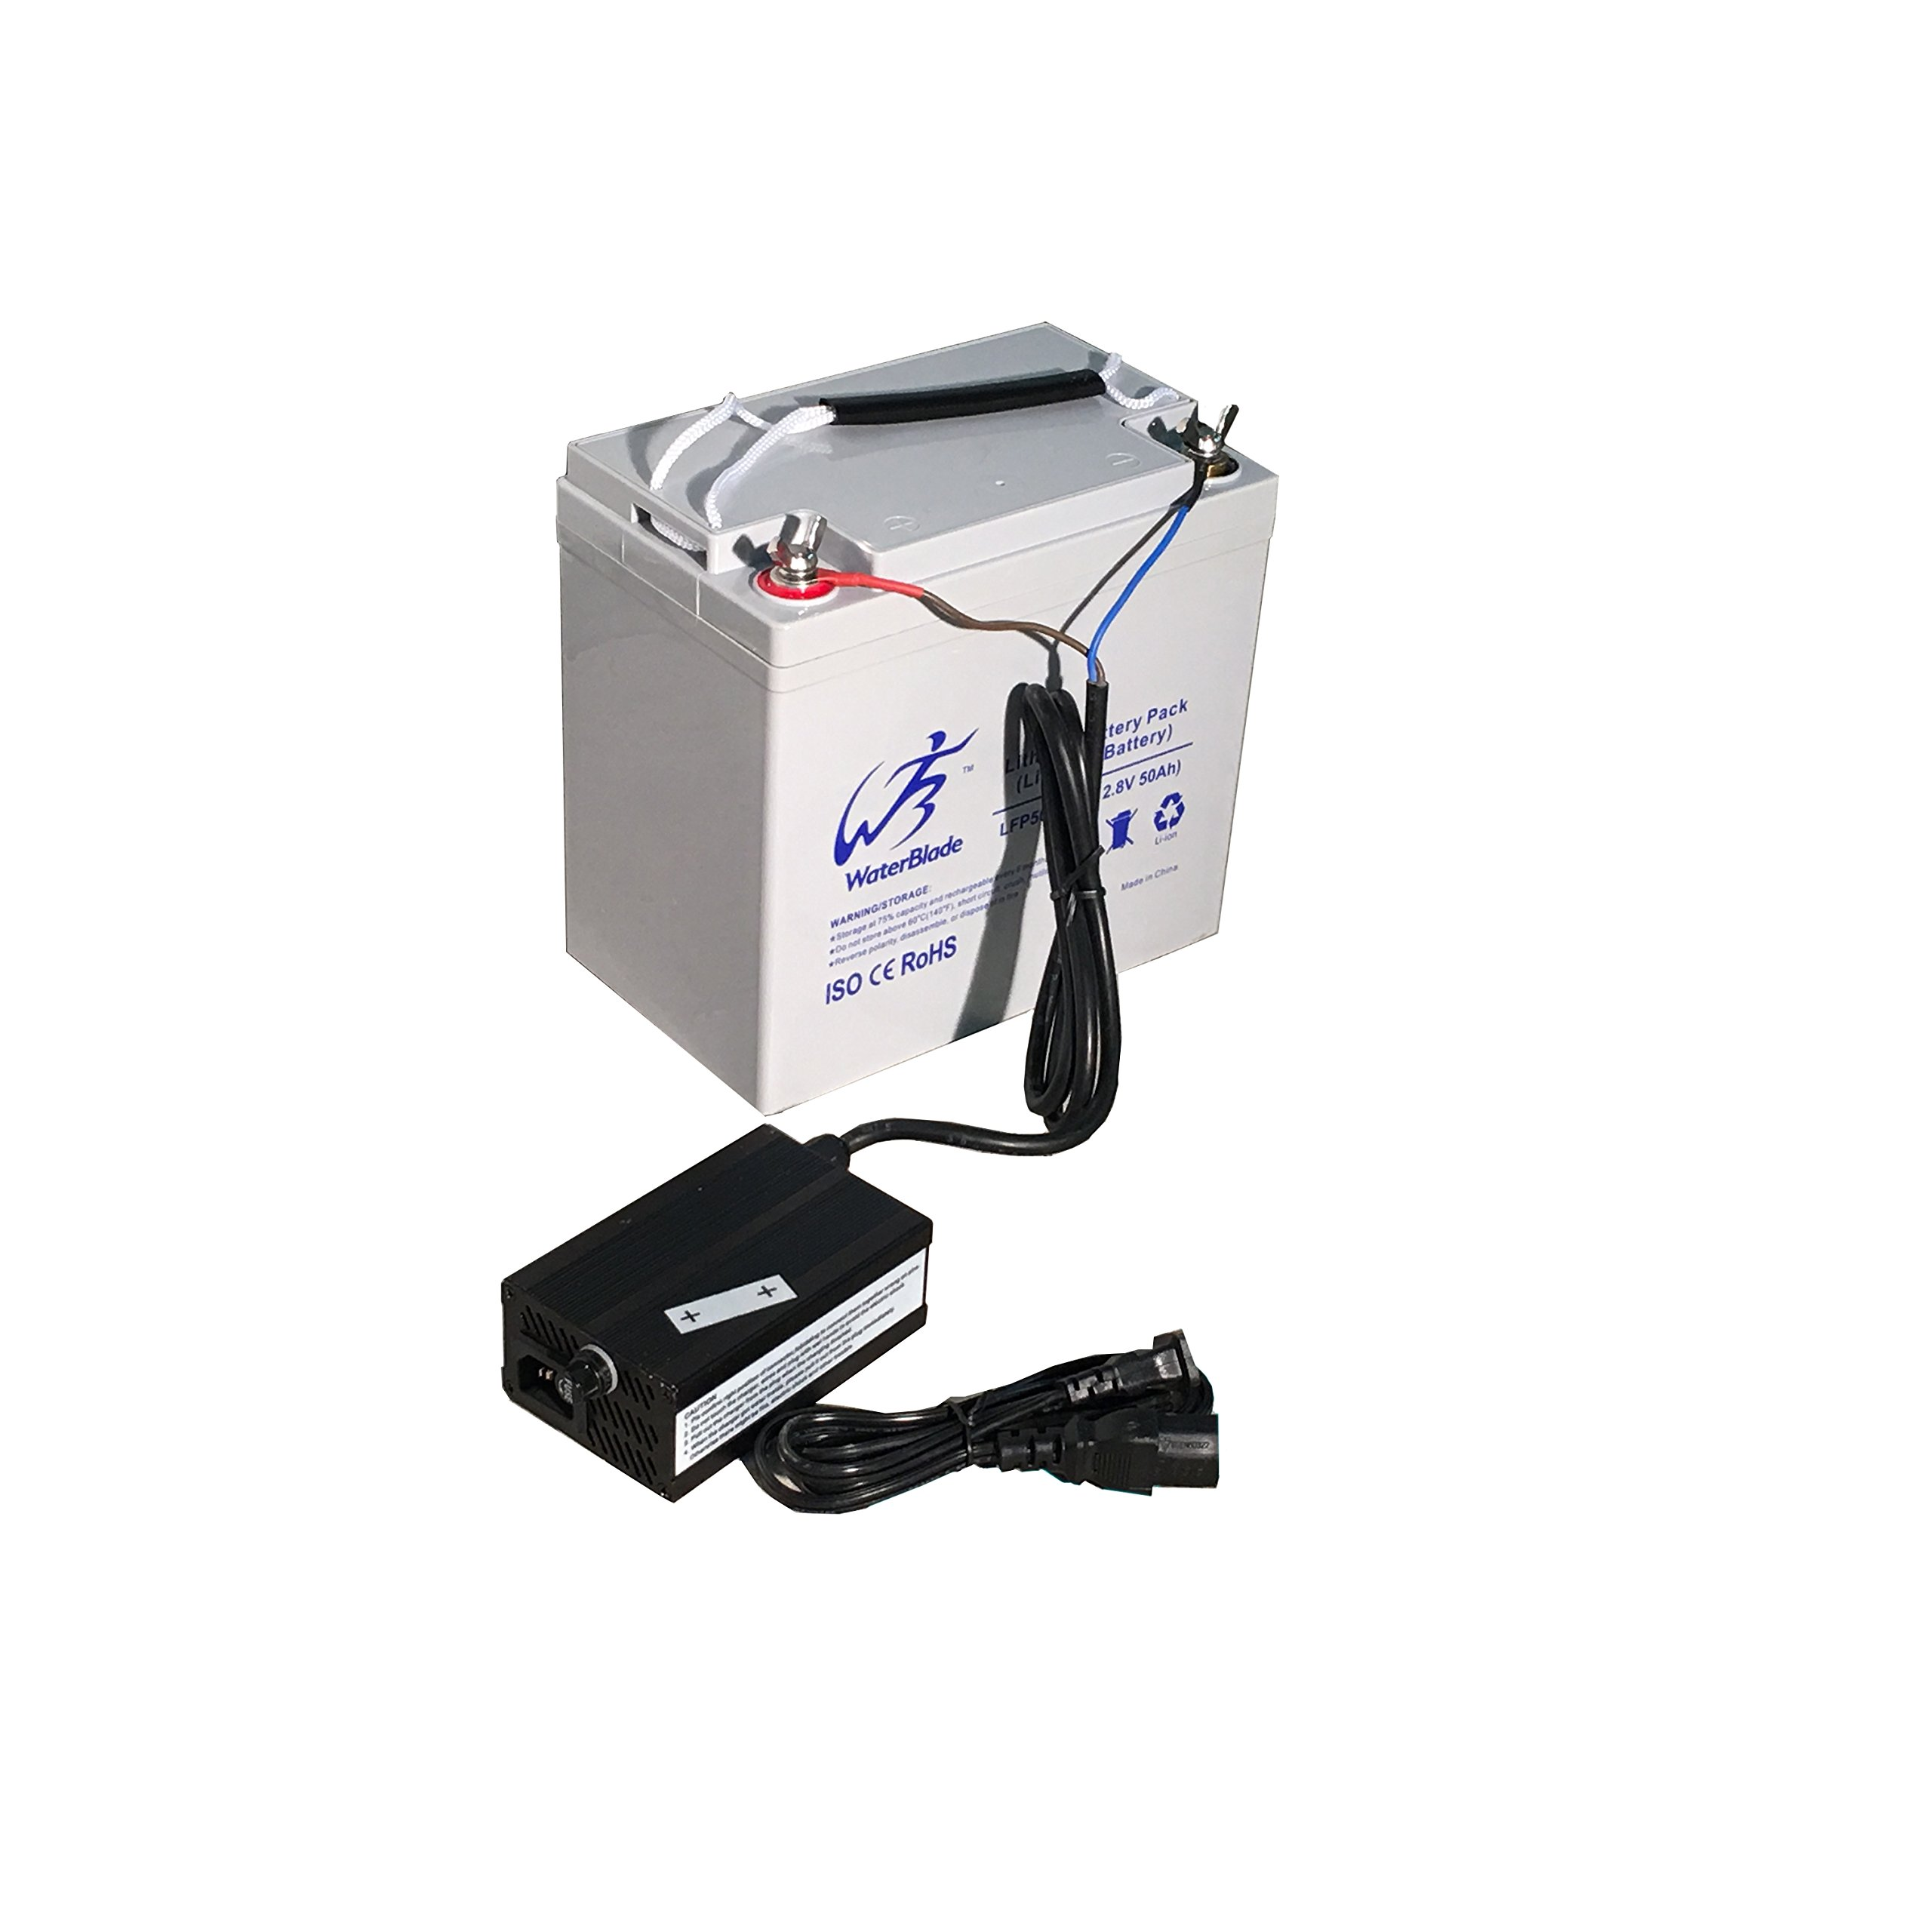 Lithium Battery LifePo4 12V 50Ah ( Includes 10A charger )-Solar-Marine-RV-GolftCart by Waterblade